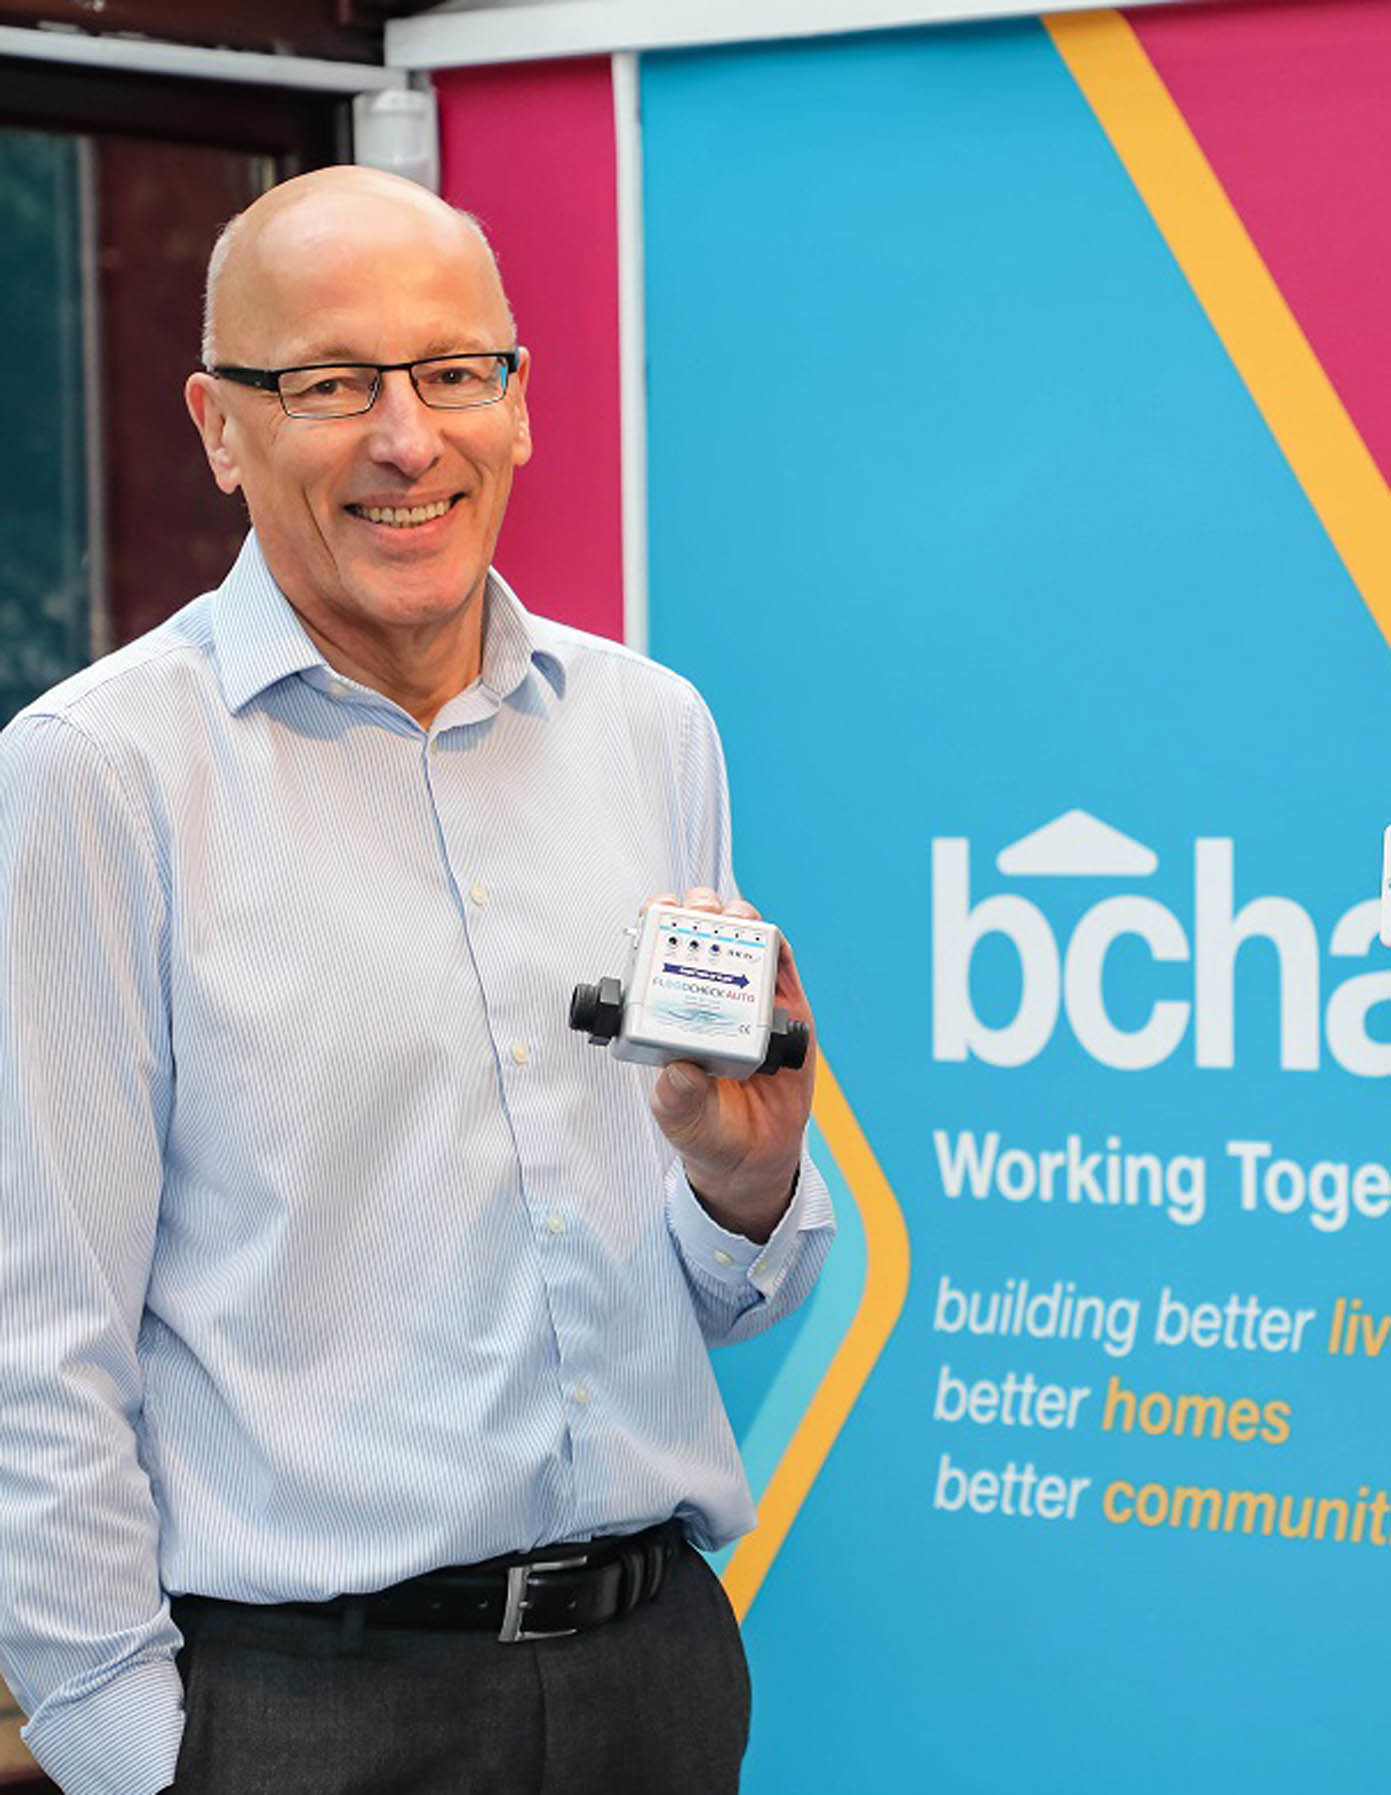 Housing association stepping up use of Internet of Things technology in homes